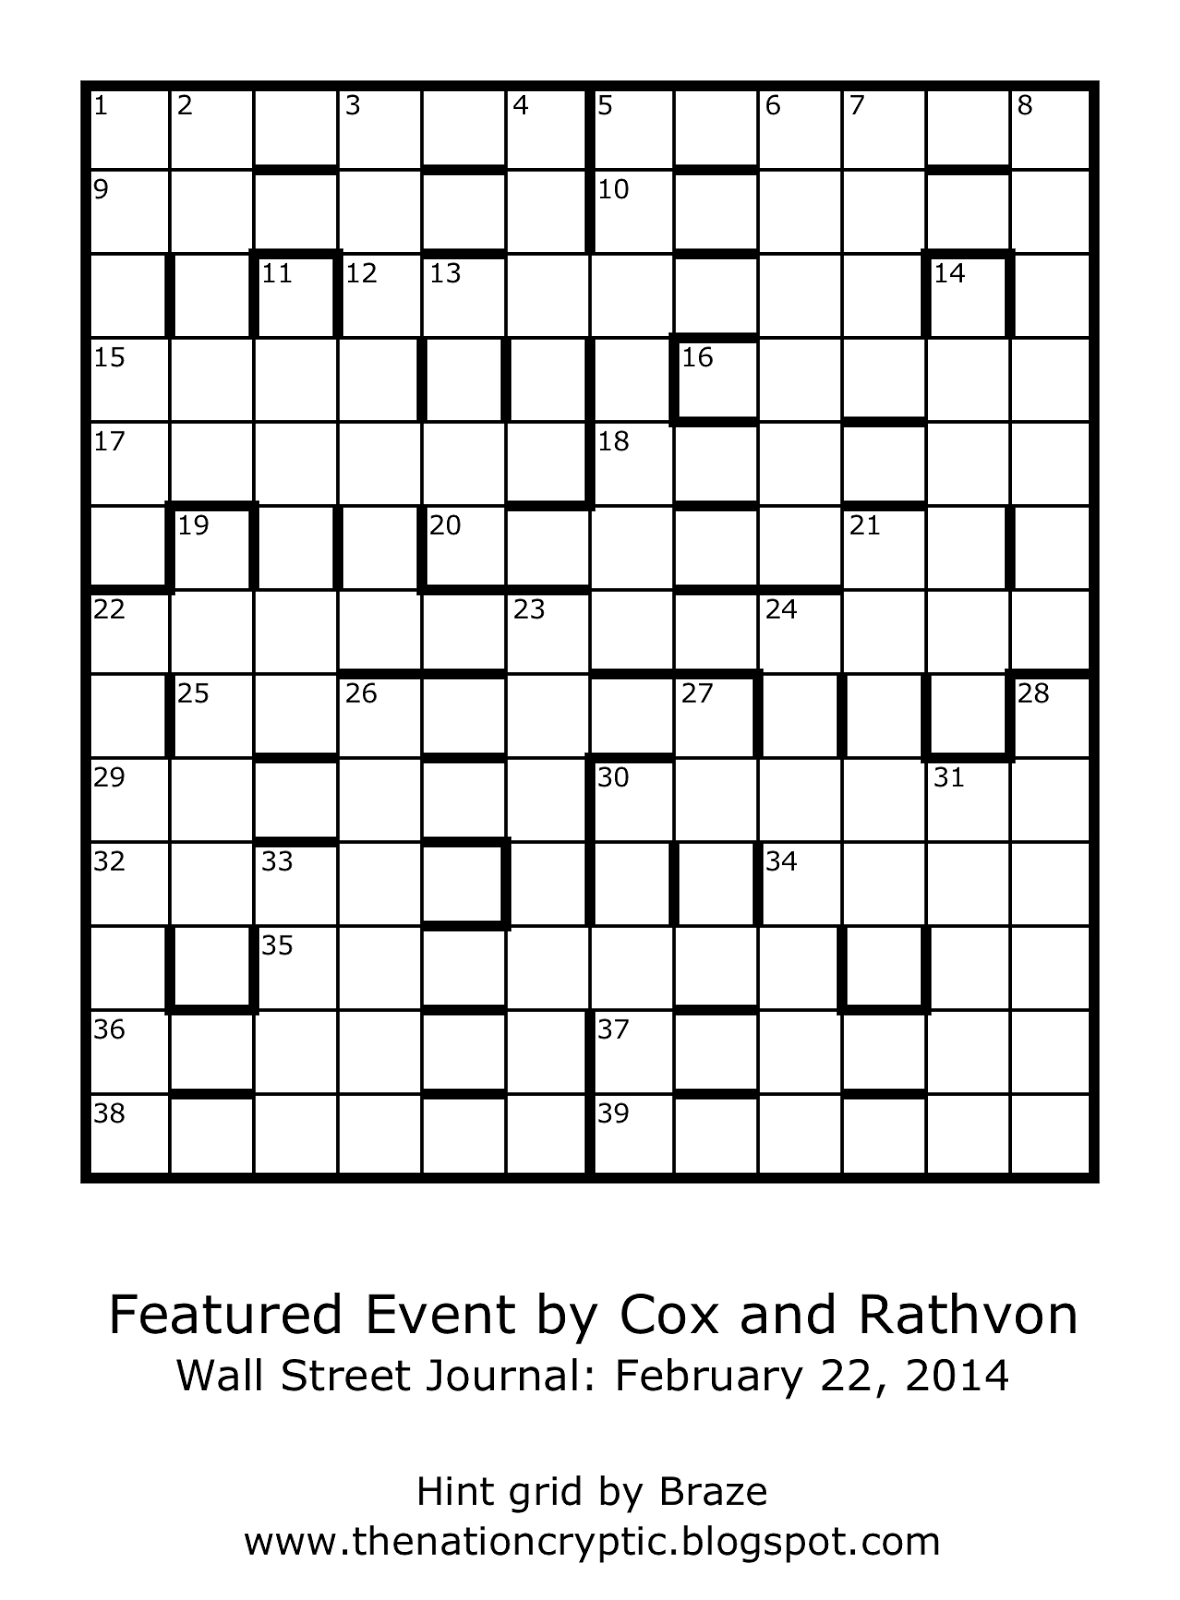 The Nation Cryptic Crossword Forum: Wall Street Journal